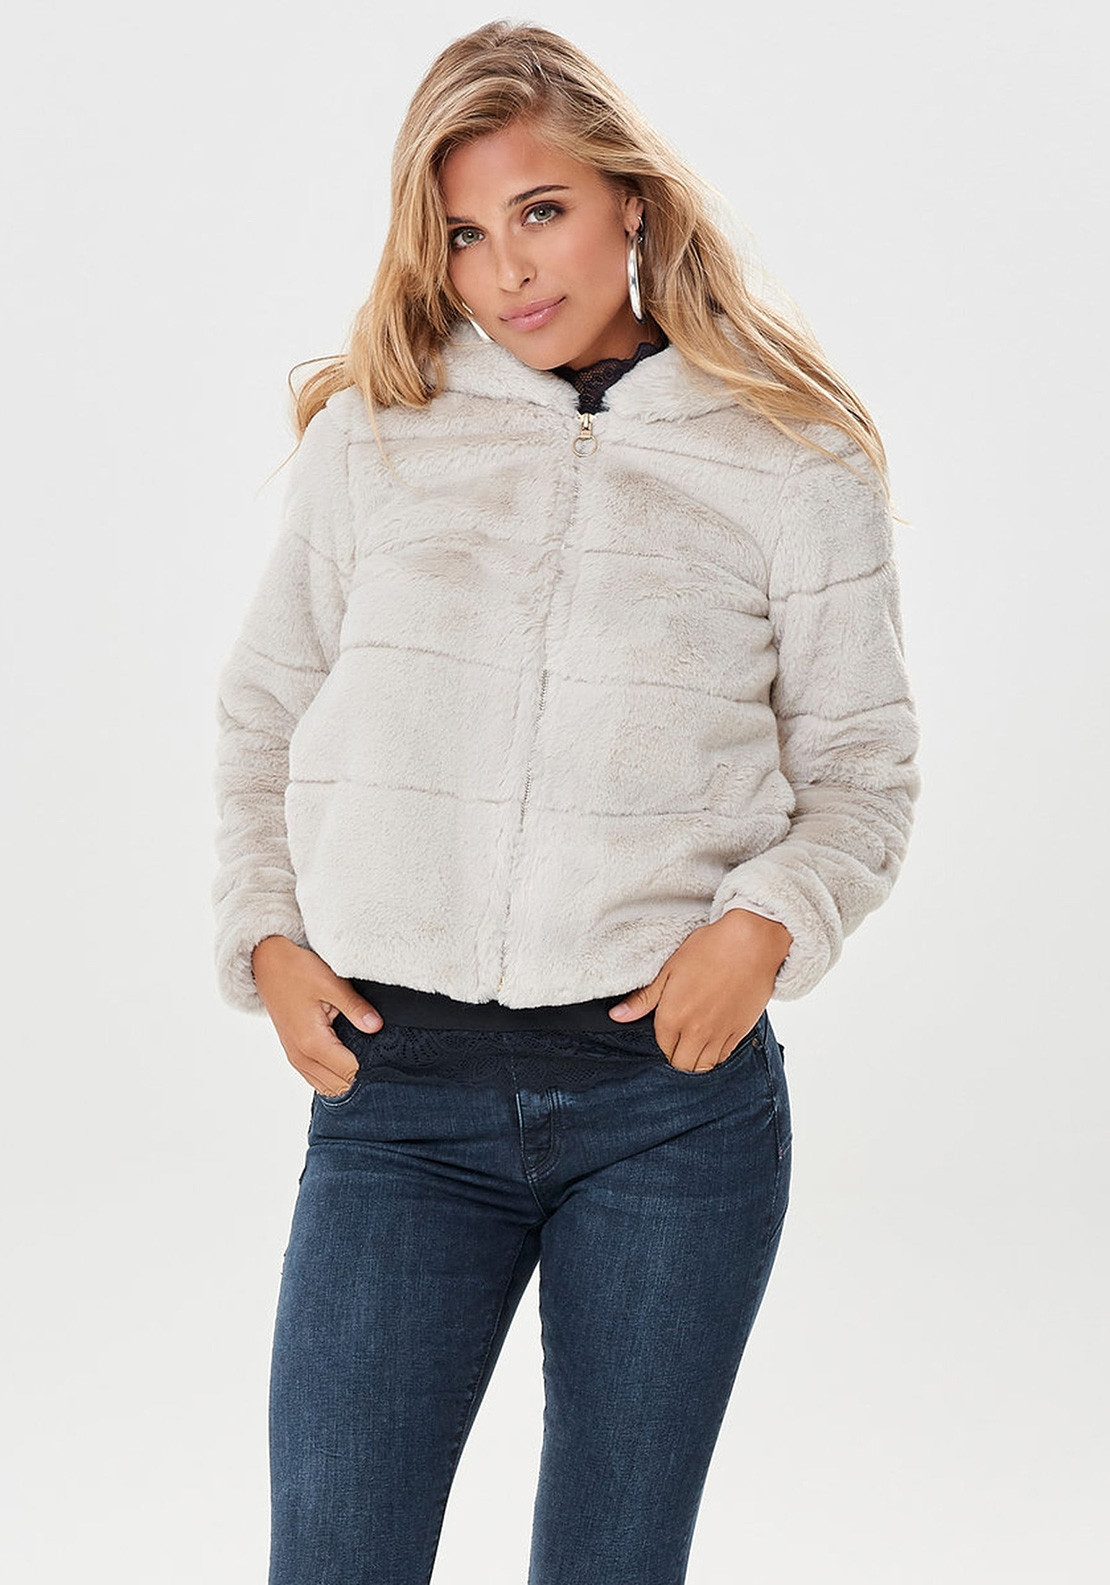 50% off fashion style size 7 Only Chris Faux Fur Hooded Jacket, Cream | McElhinneys